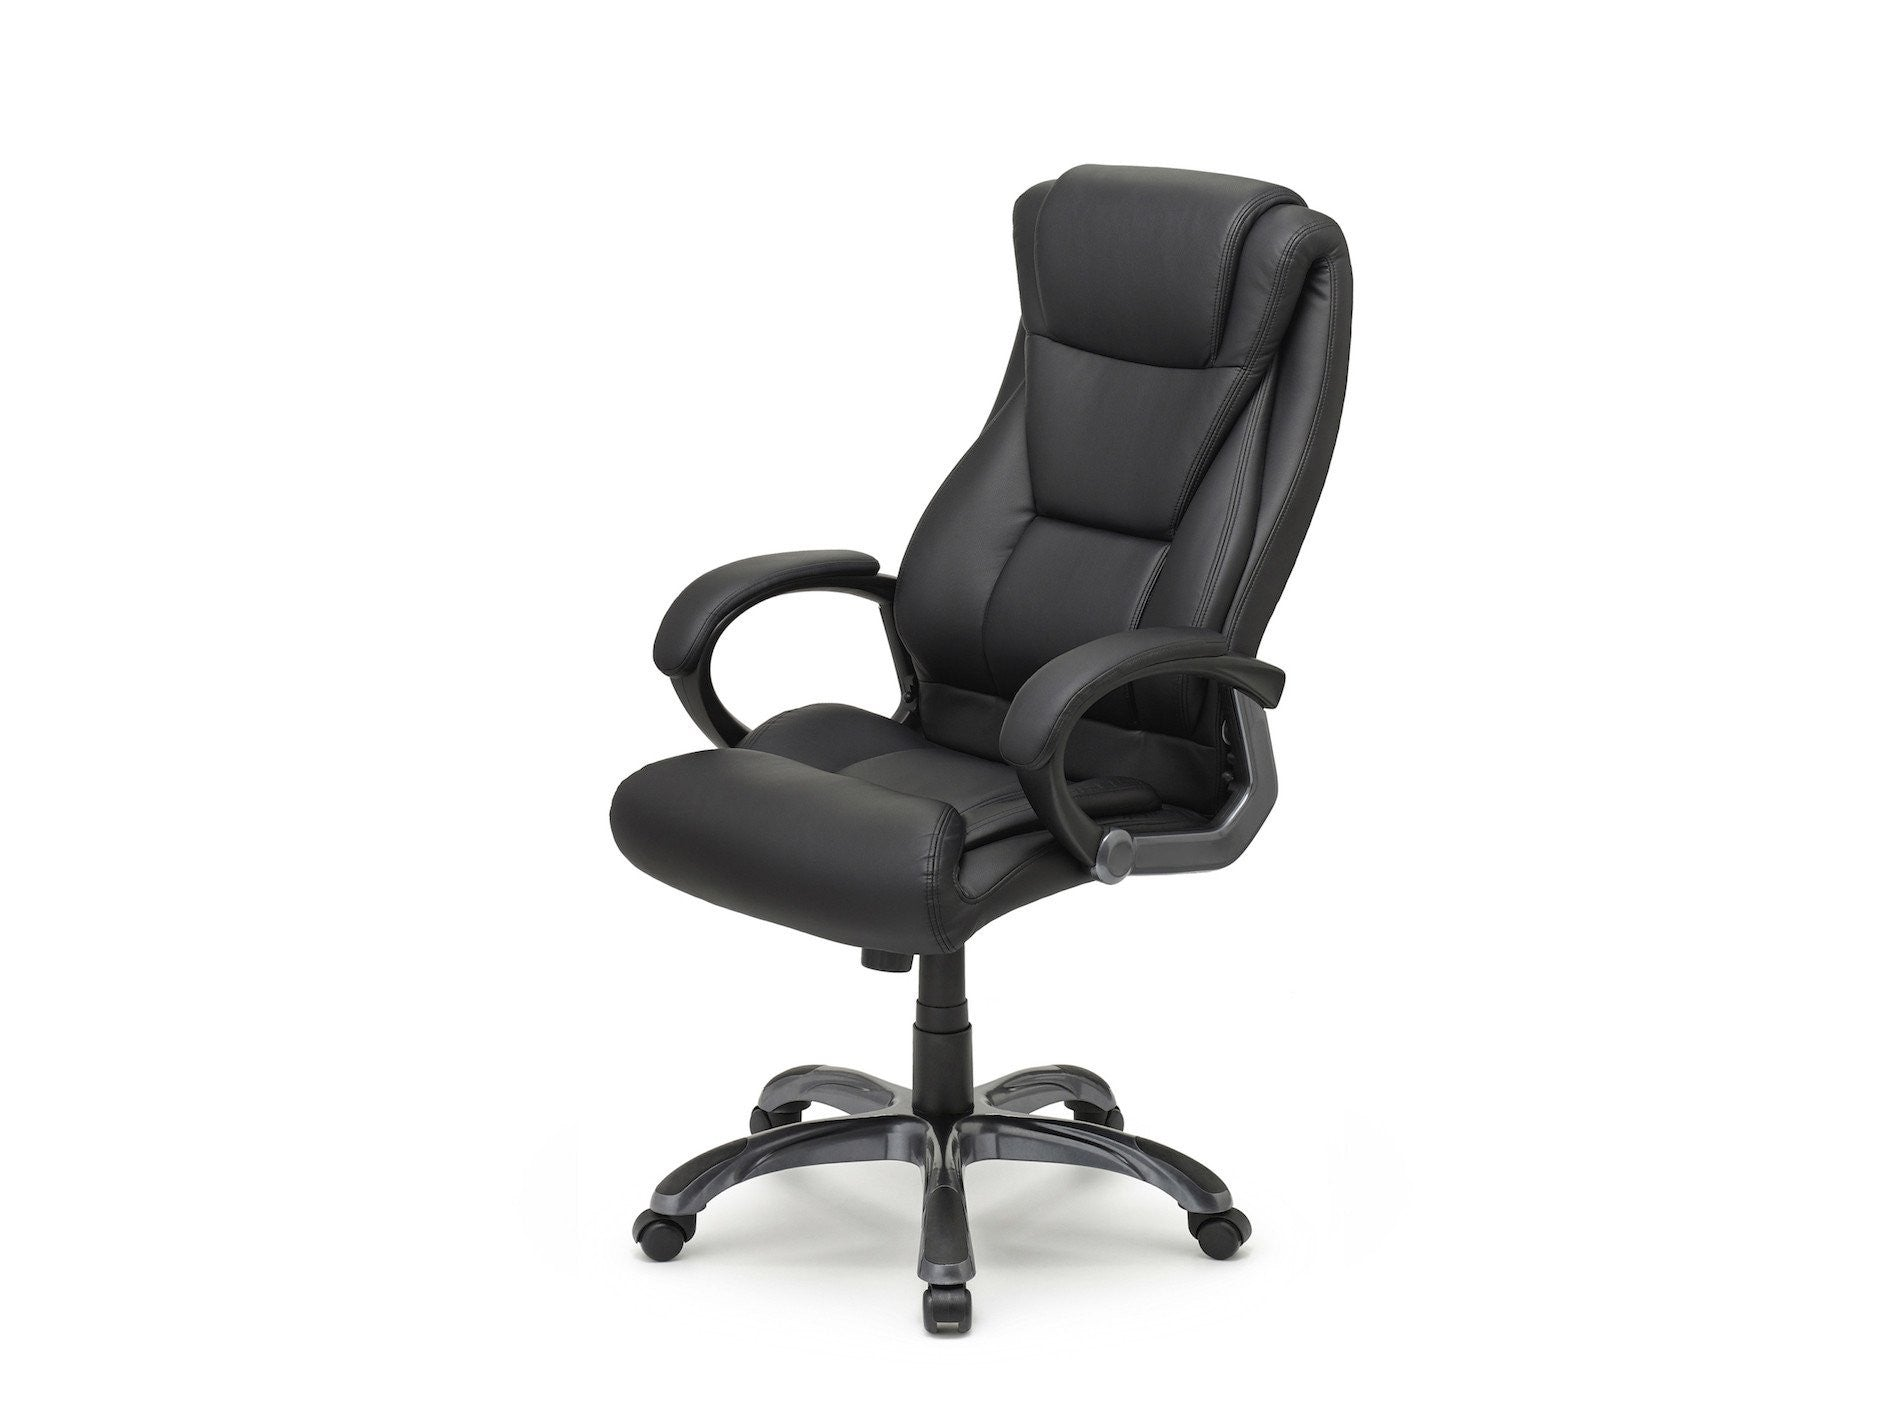 executive lumbar support office chair crossford. Black Bedroom Furniture Sets. Home Design Ideas